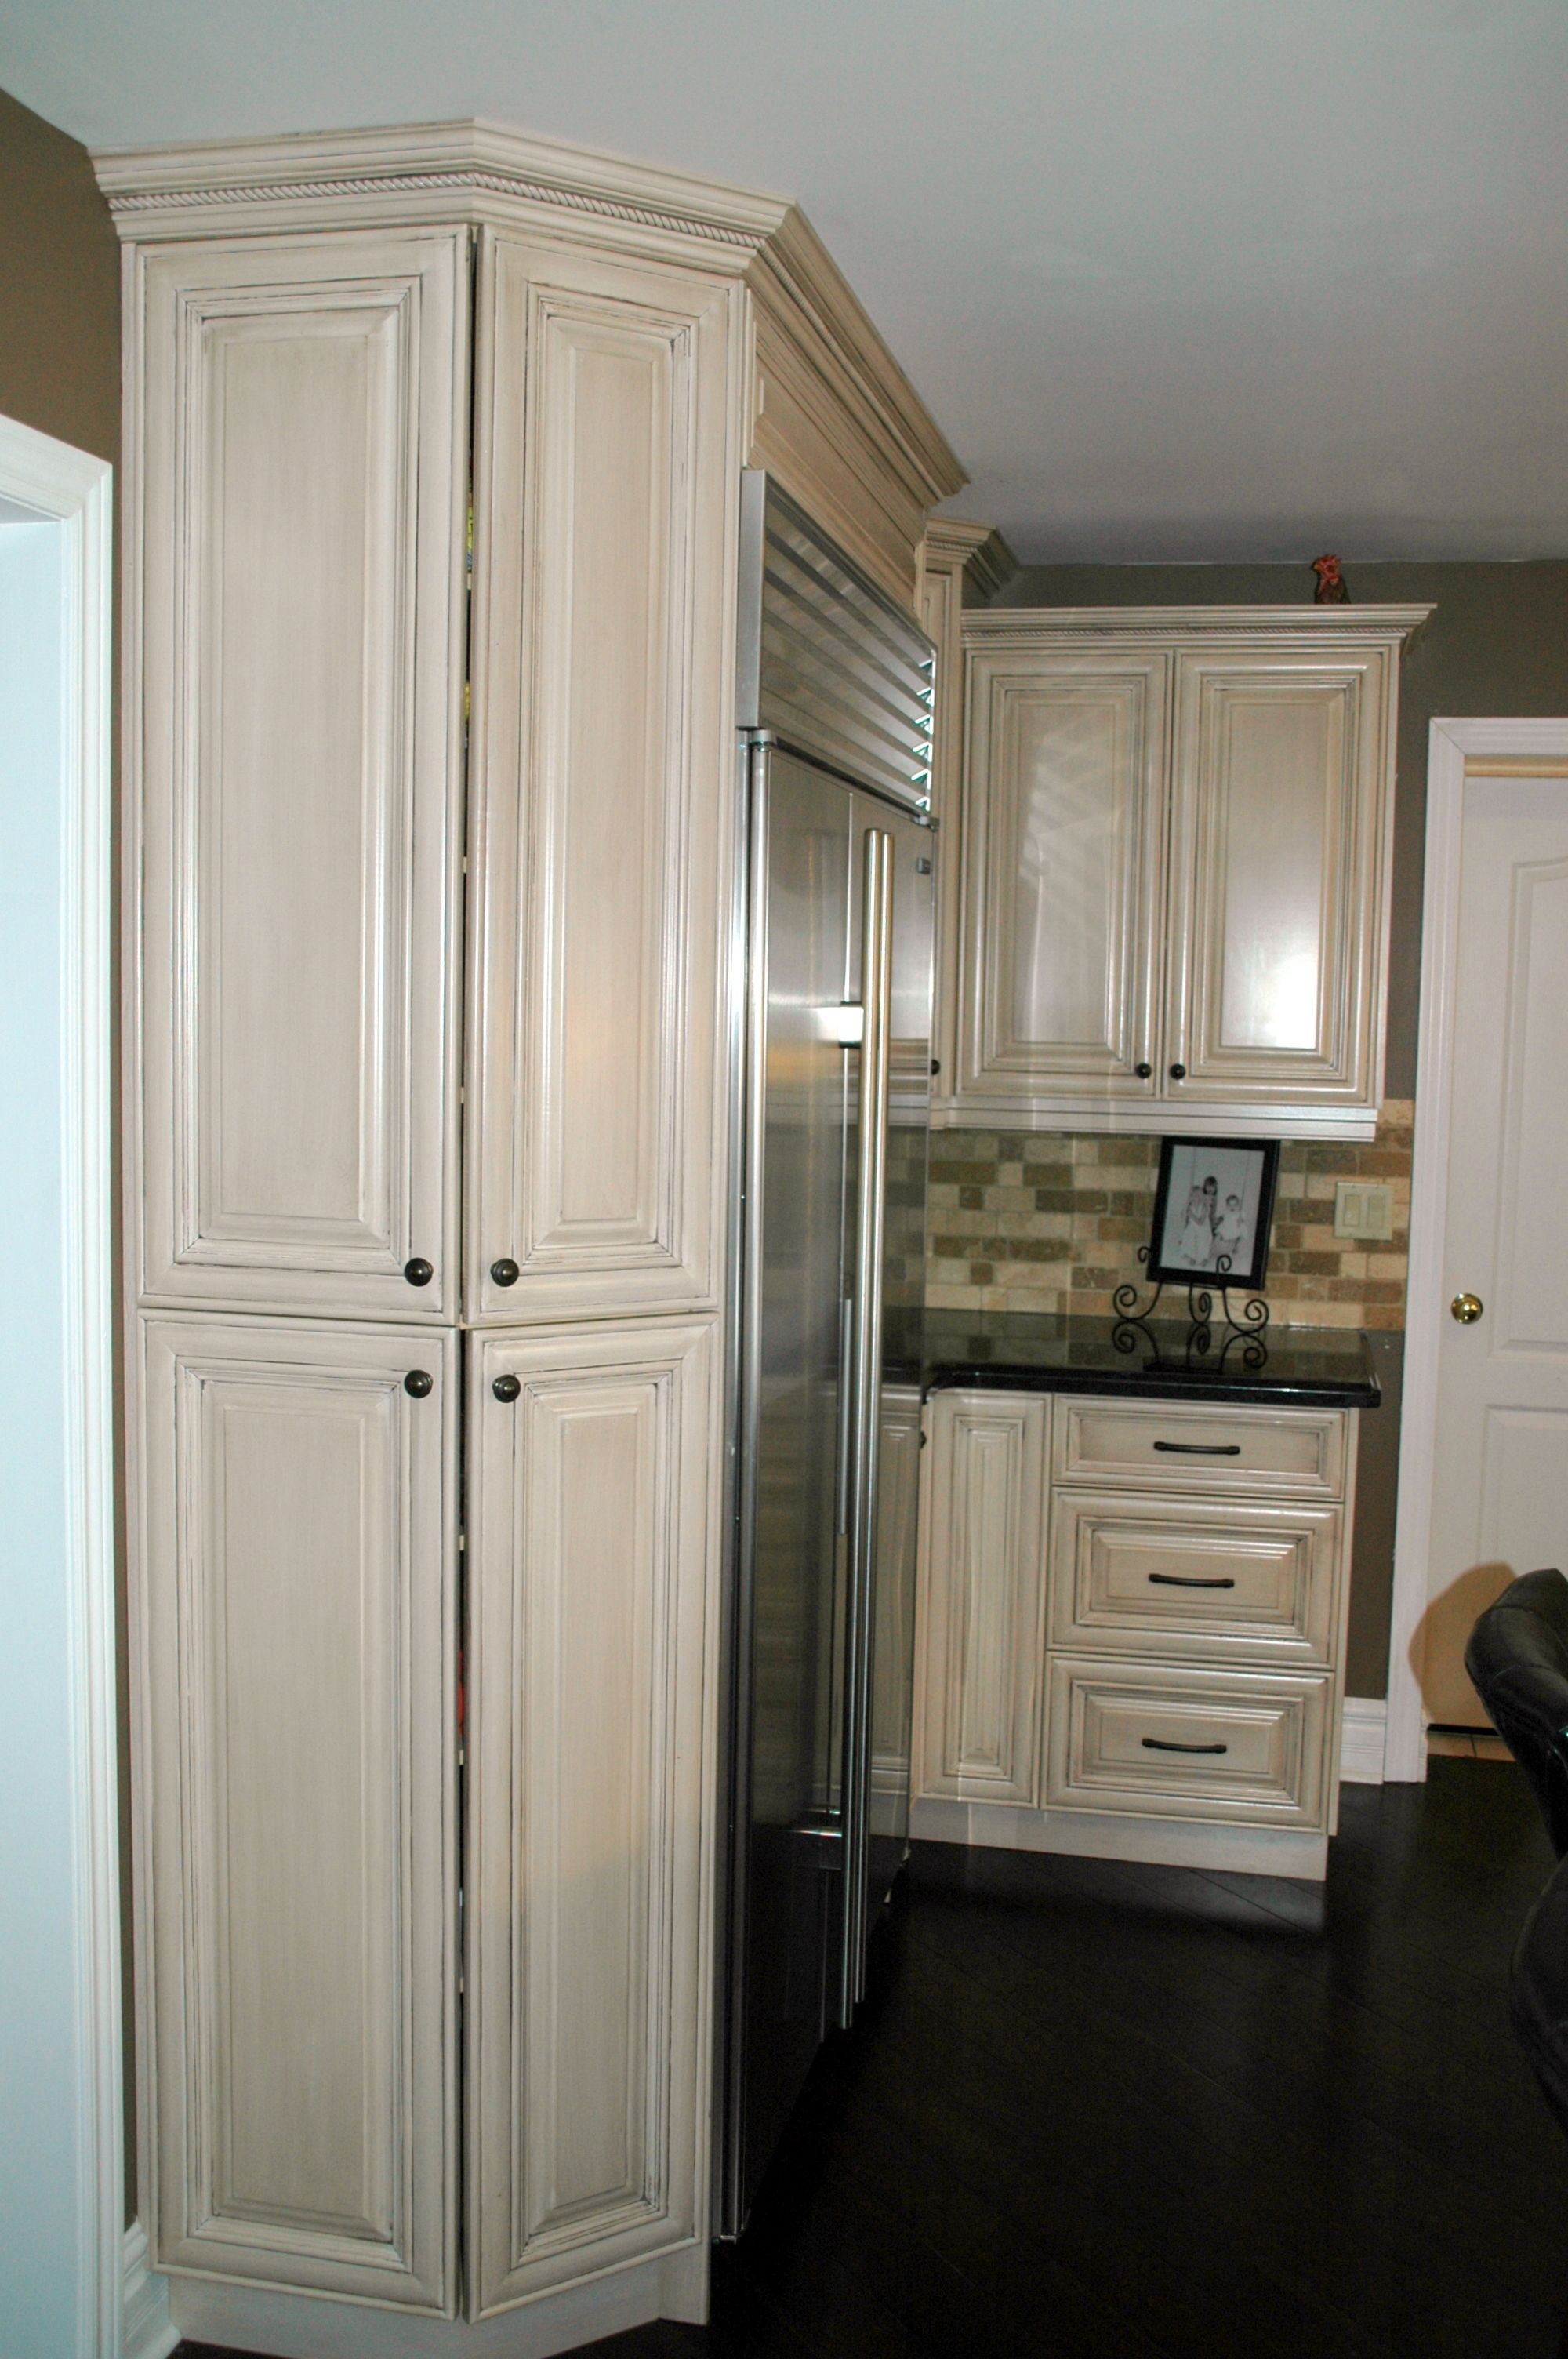 How To Build A Corner Kitchen Cabinet Angled Pantry Cabinets Allow For Storage And No Sharp